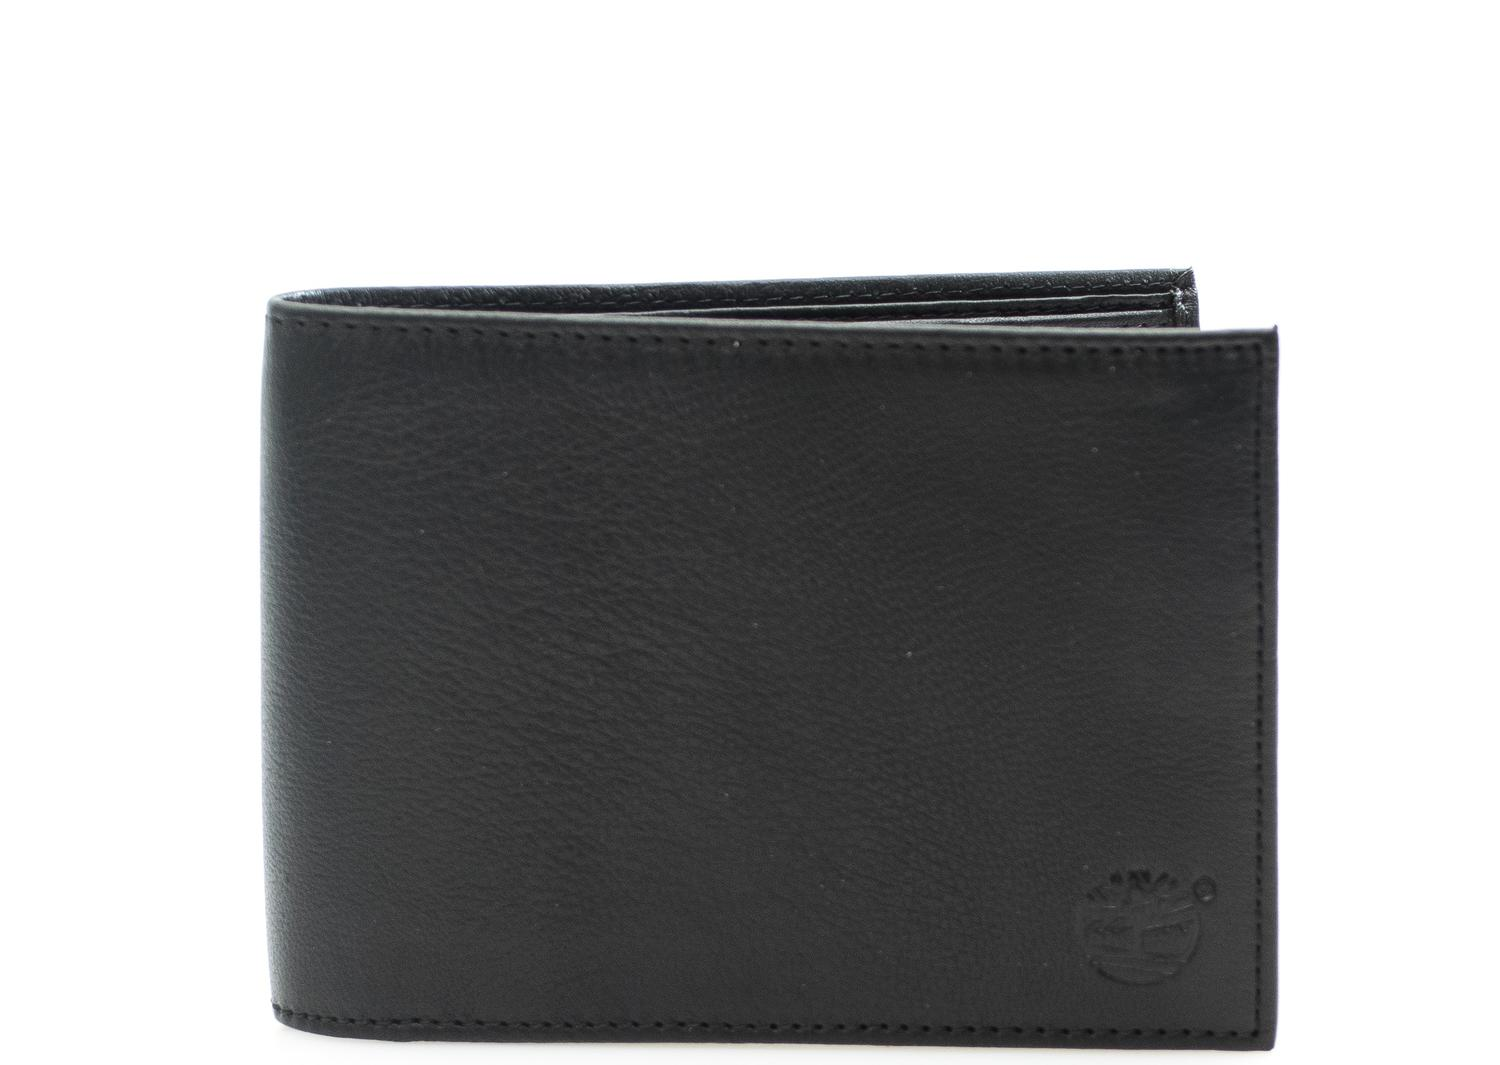 new style price reduced sells TIMBERLAND wallet